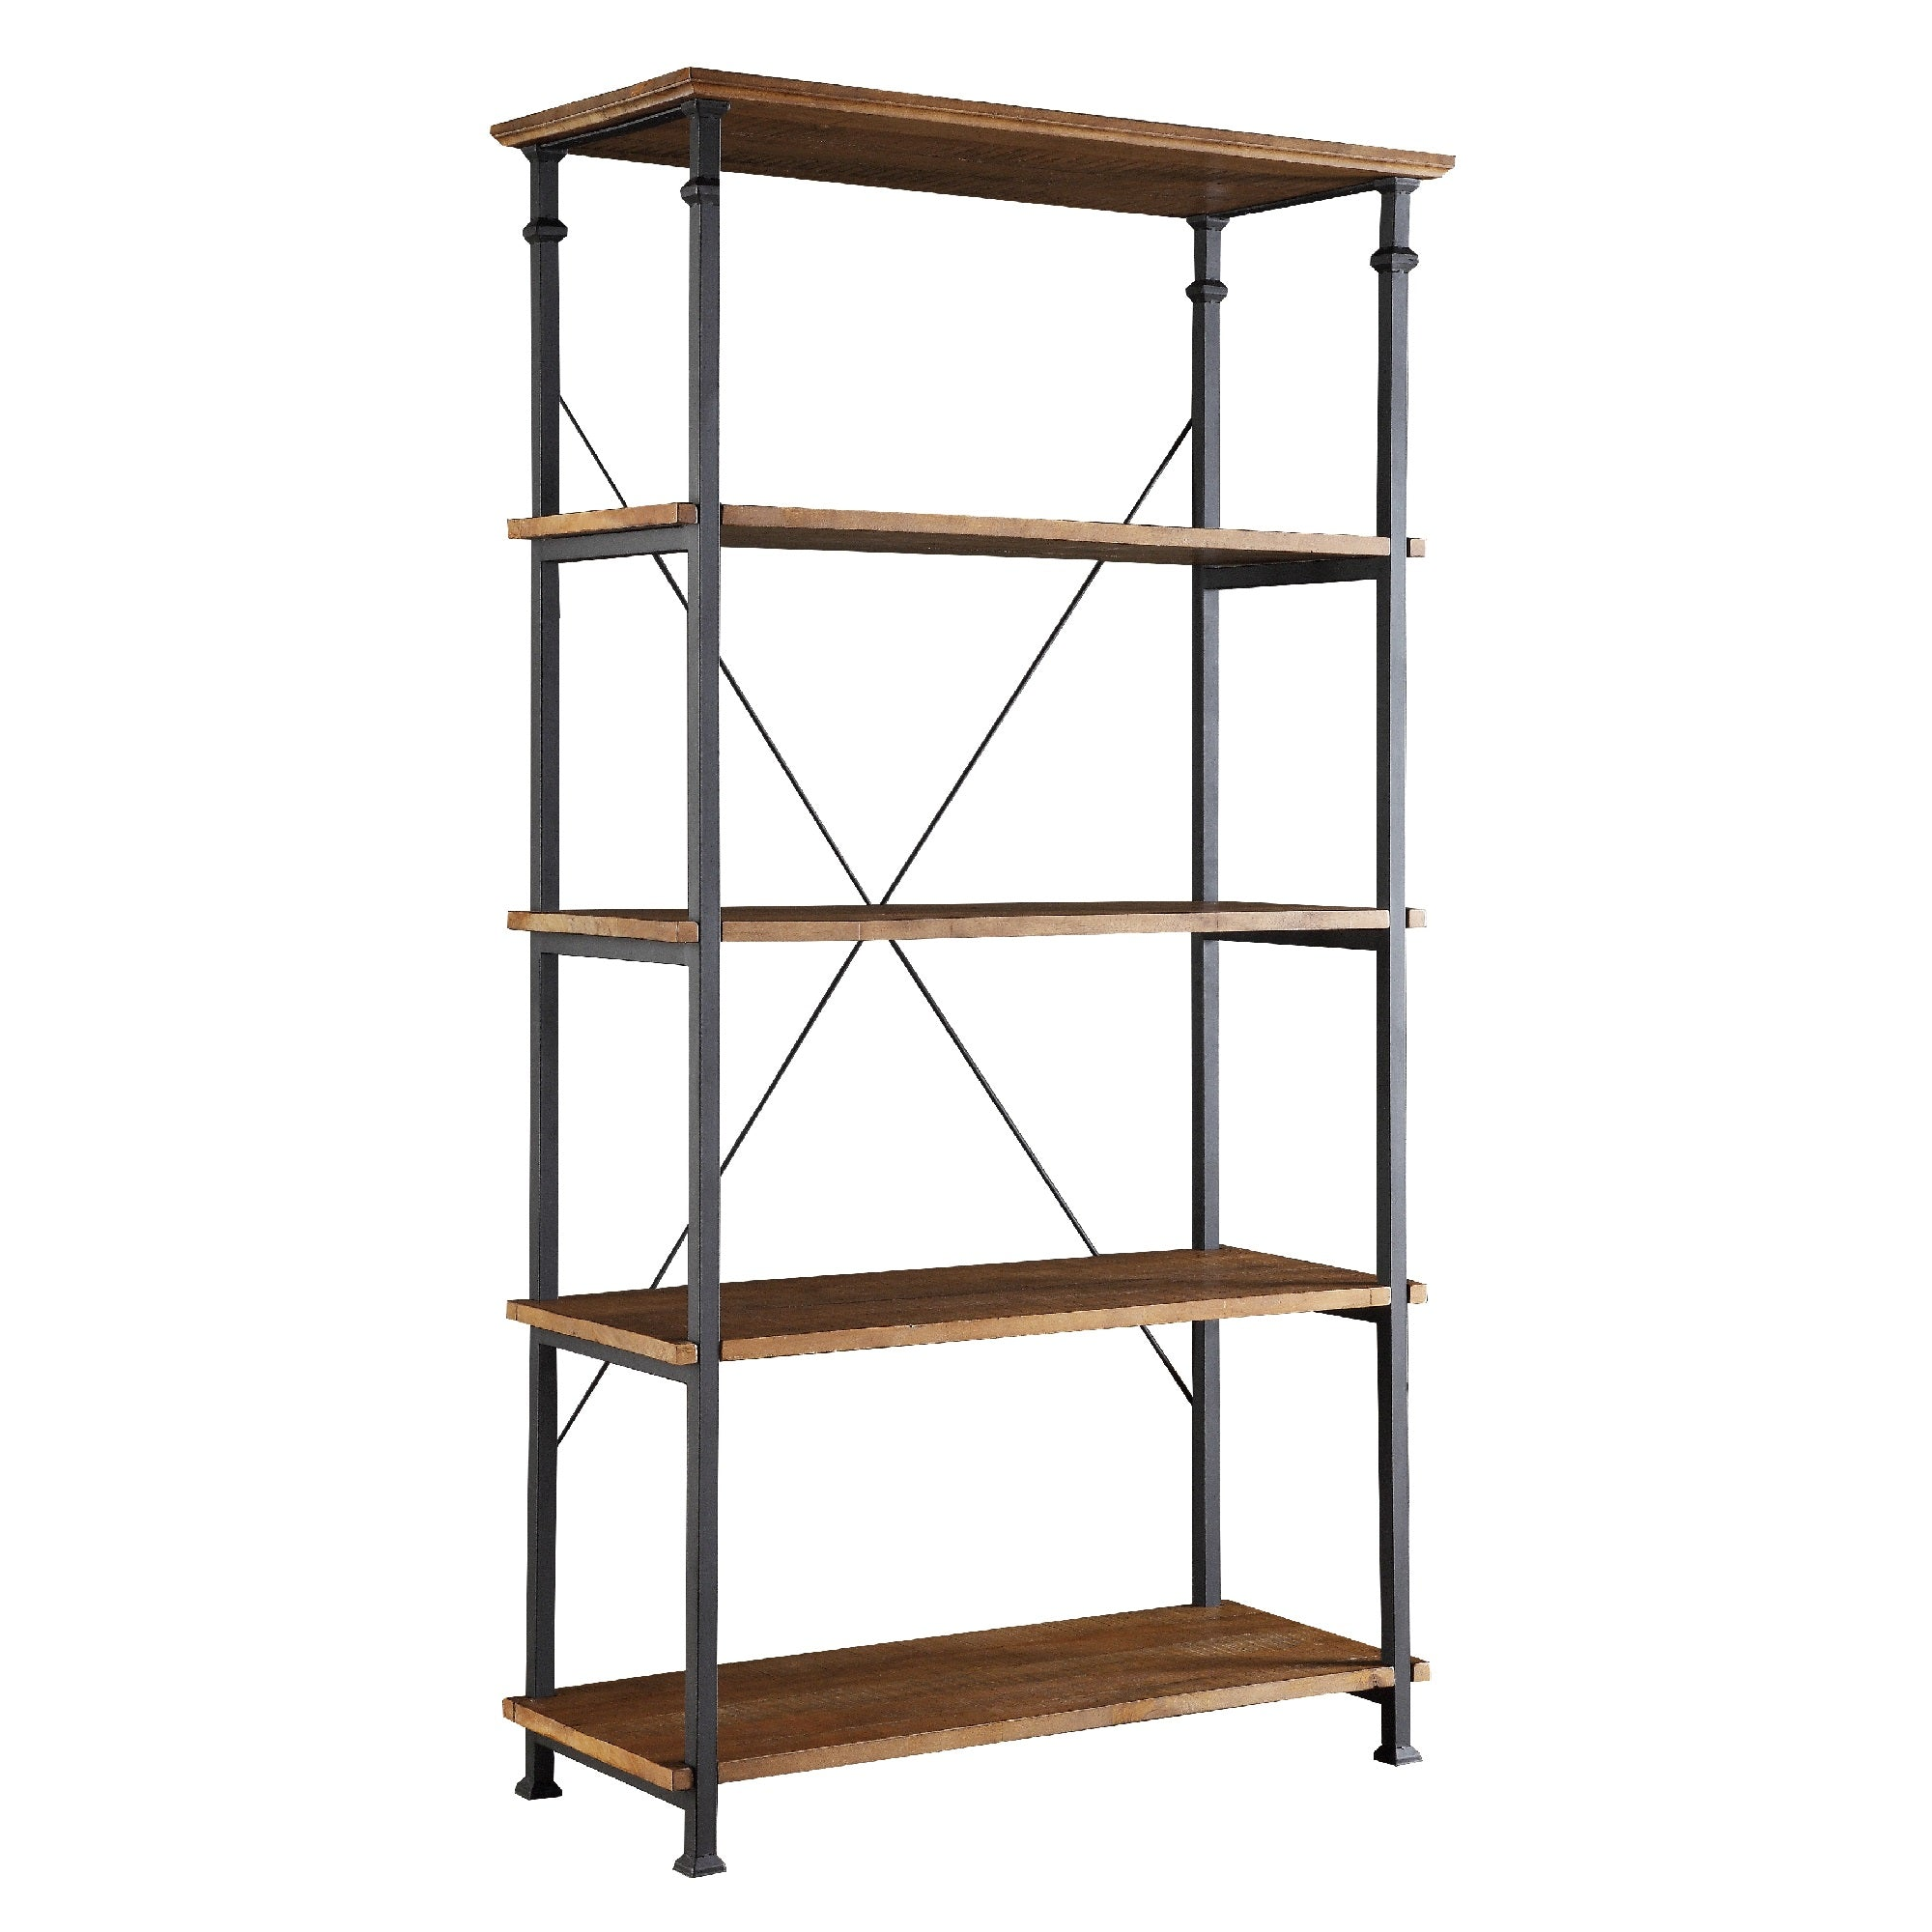 Vintage Industrial 40-inch Bookcase - Rustic Oak Finish